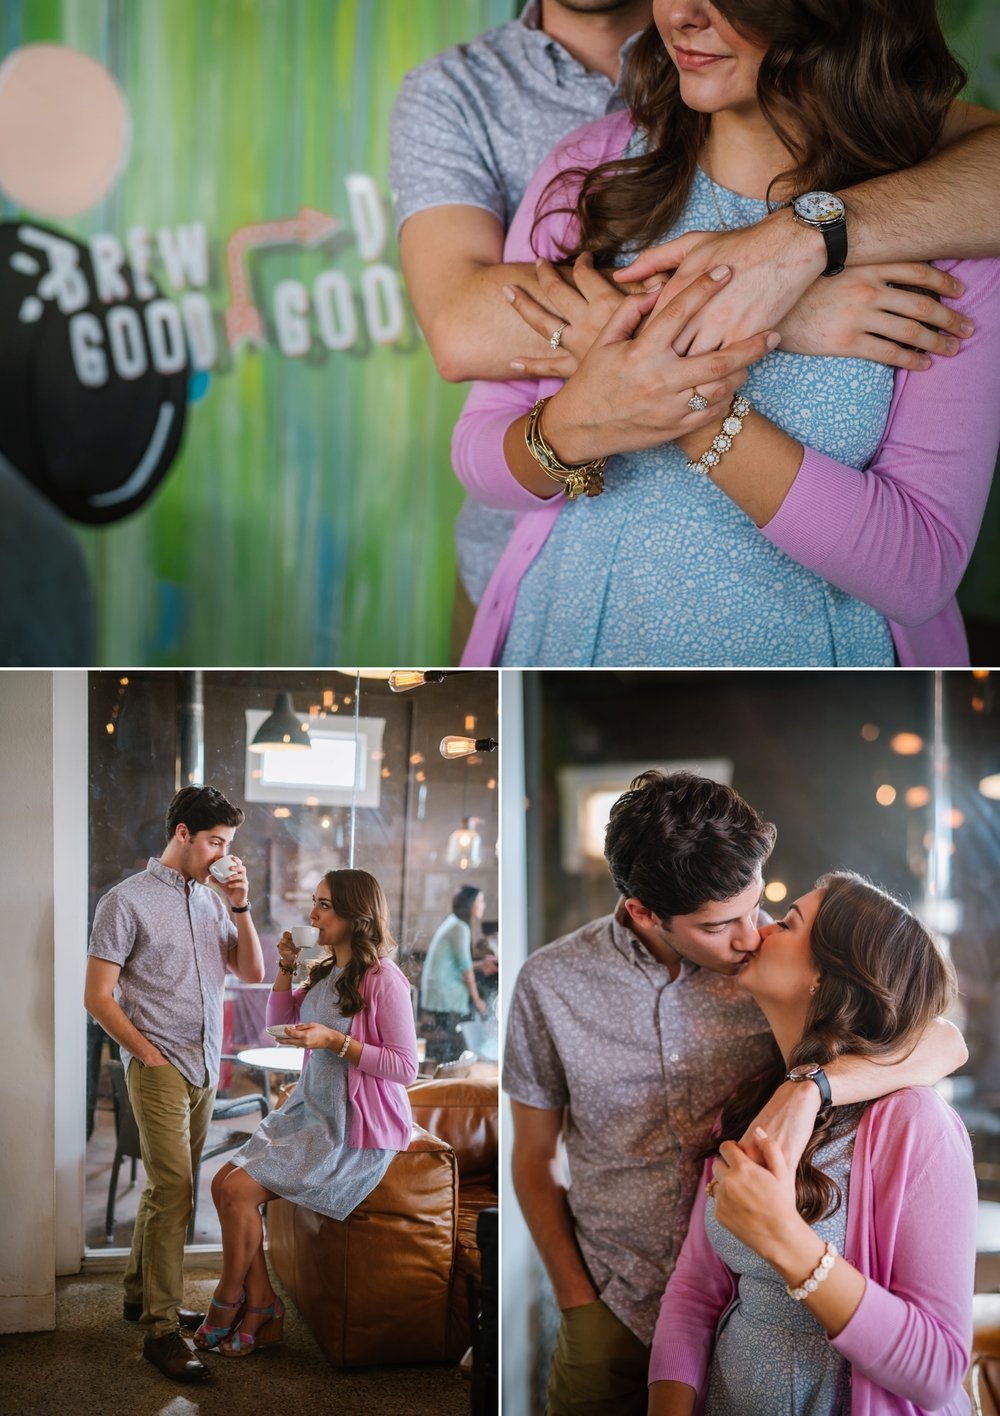 ashlee-hamon-photography-tampa-buddy-brew-coffee-shop-engagement_0002.jpg